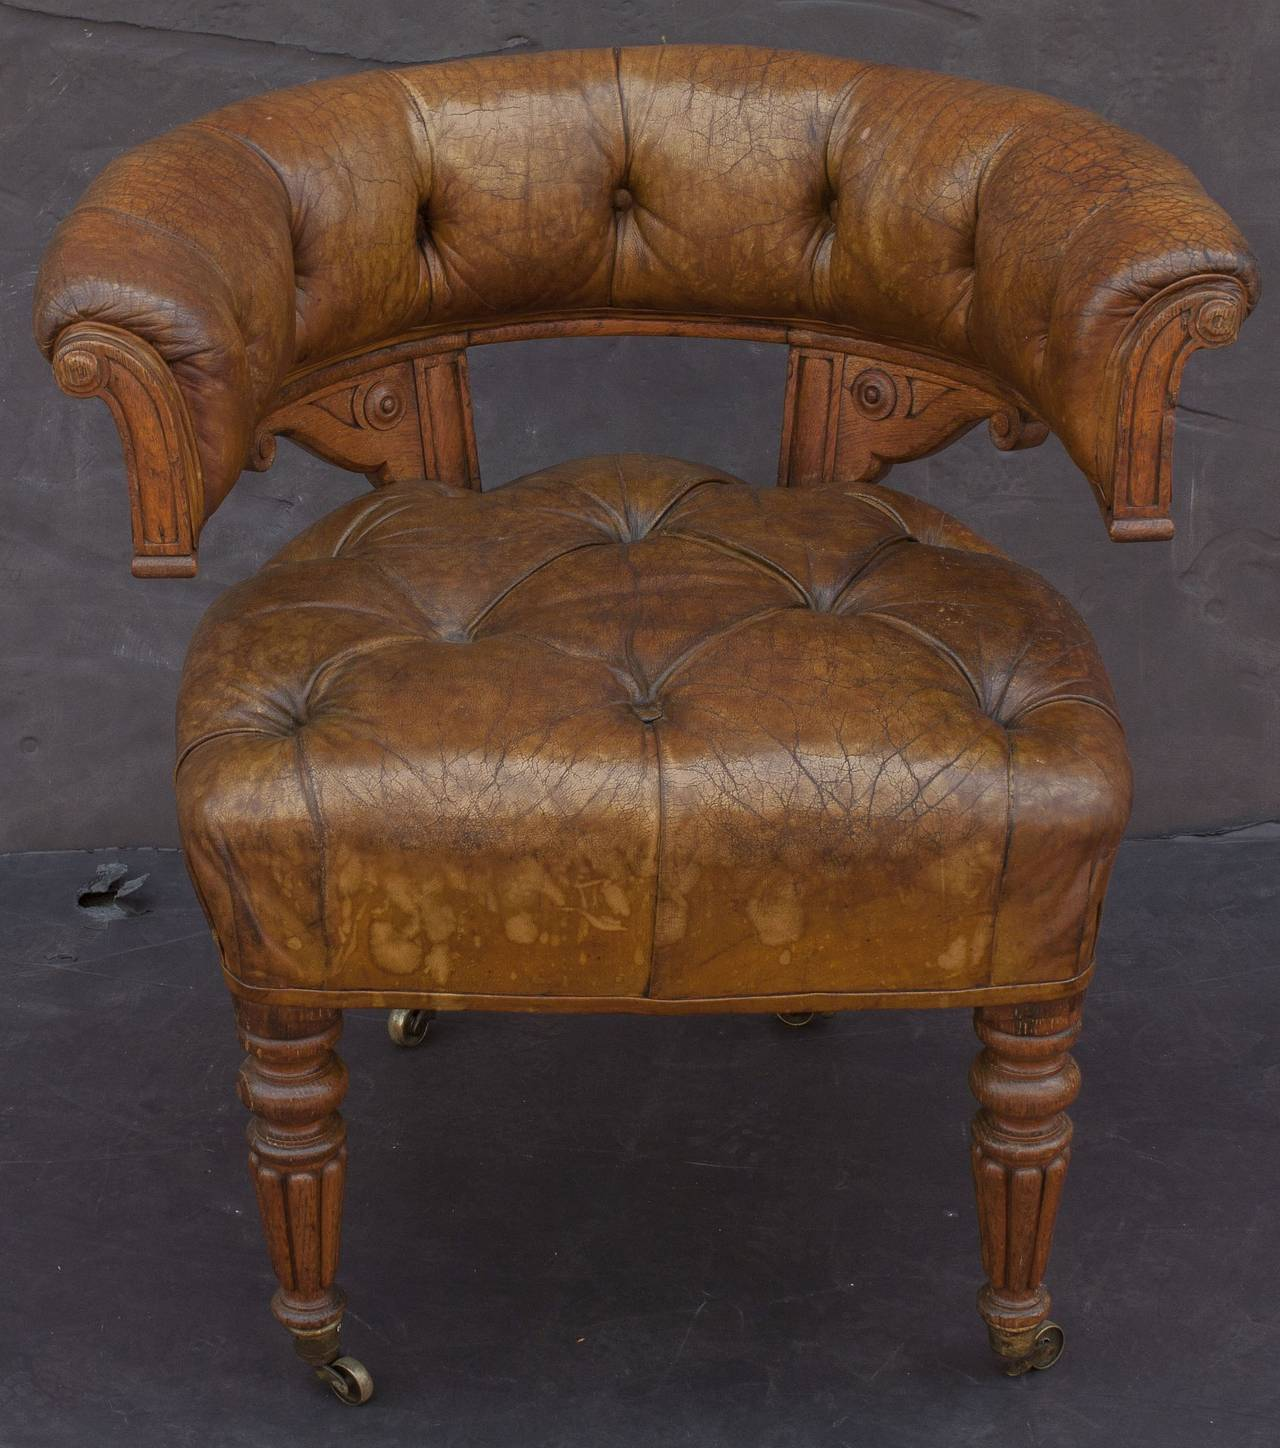 tufted desk chair chairs and stools english leather at 1stdibs